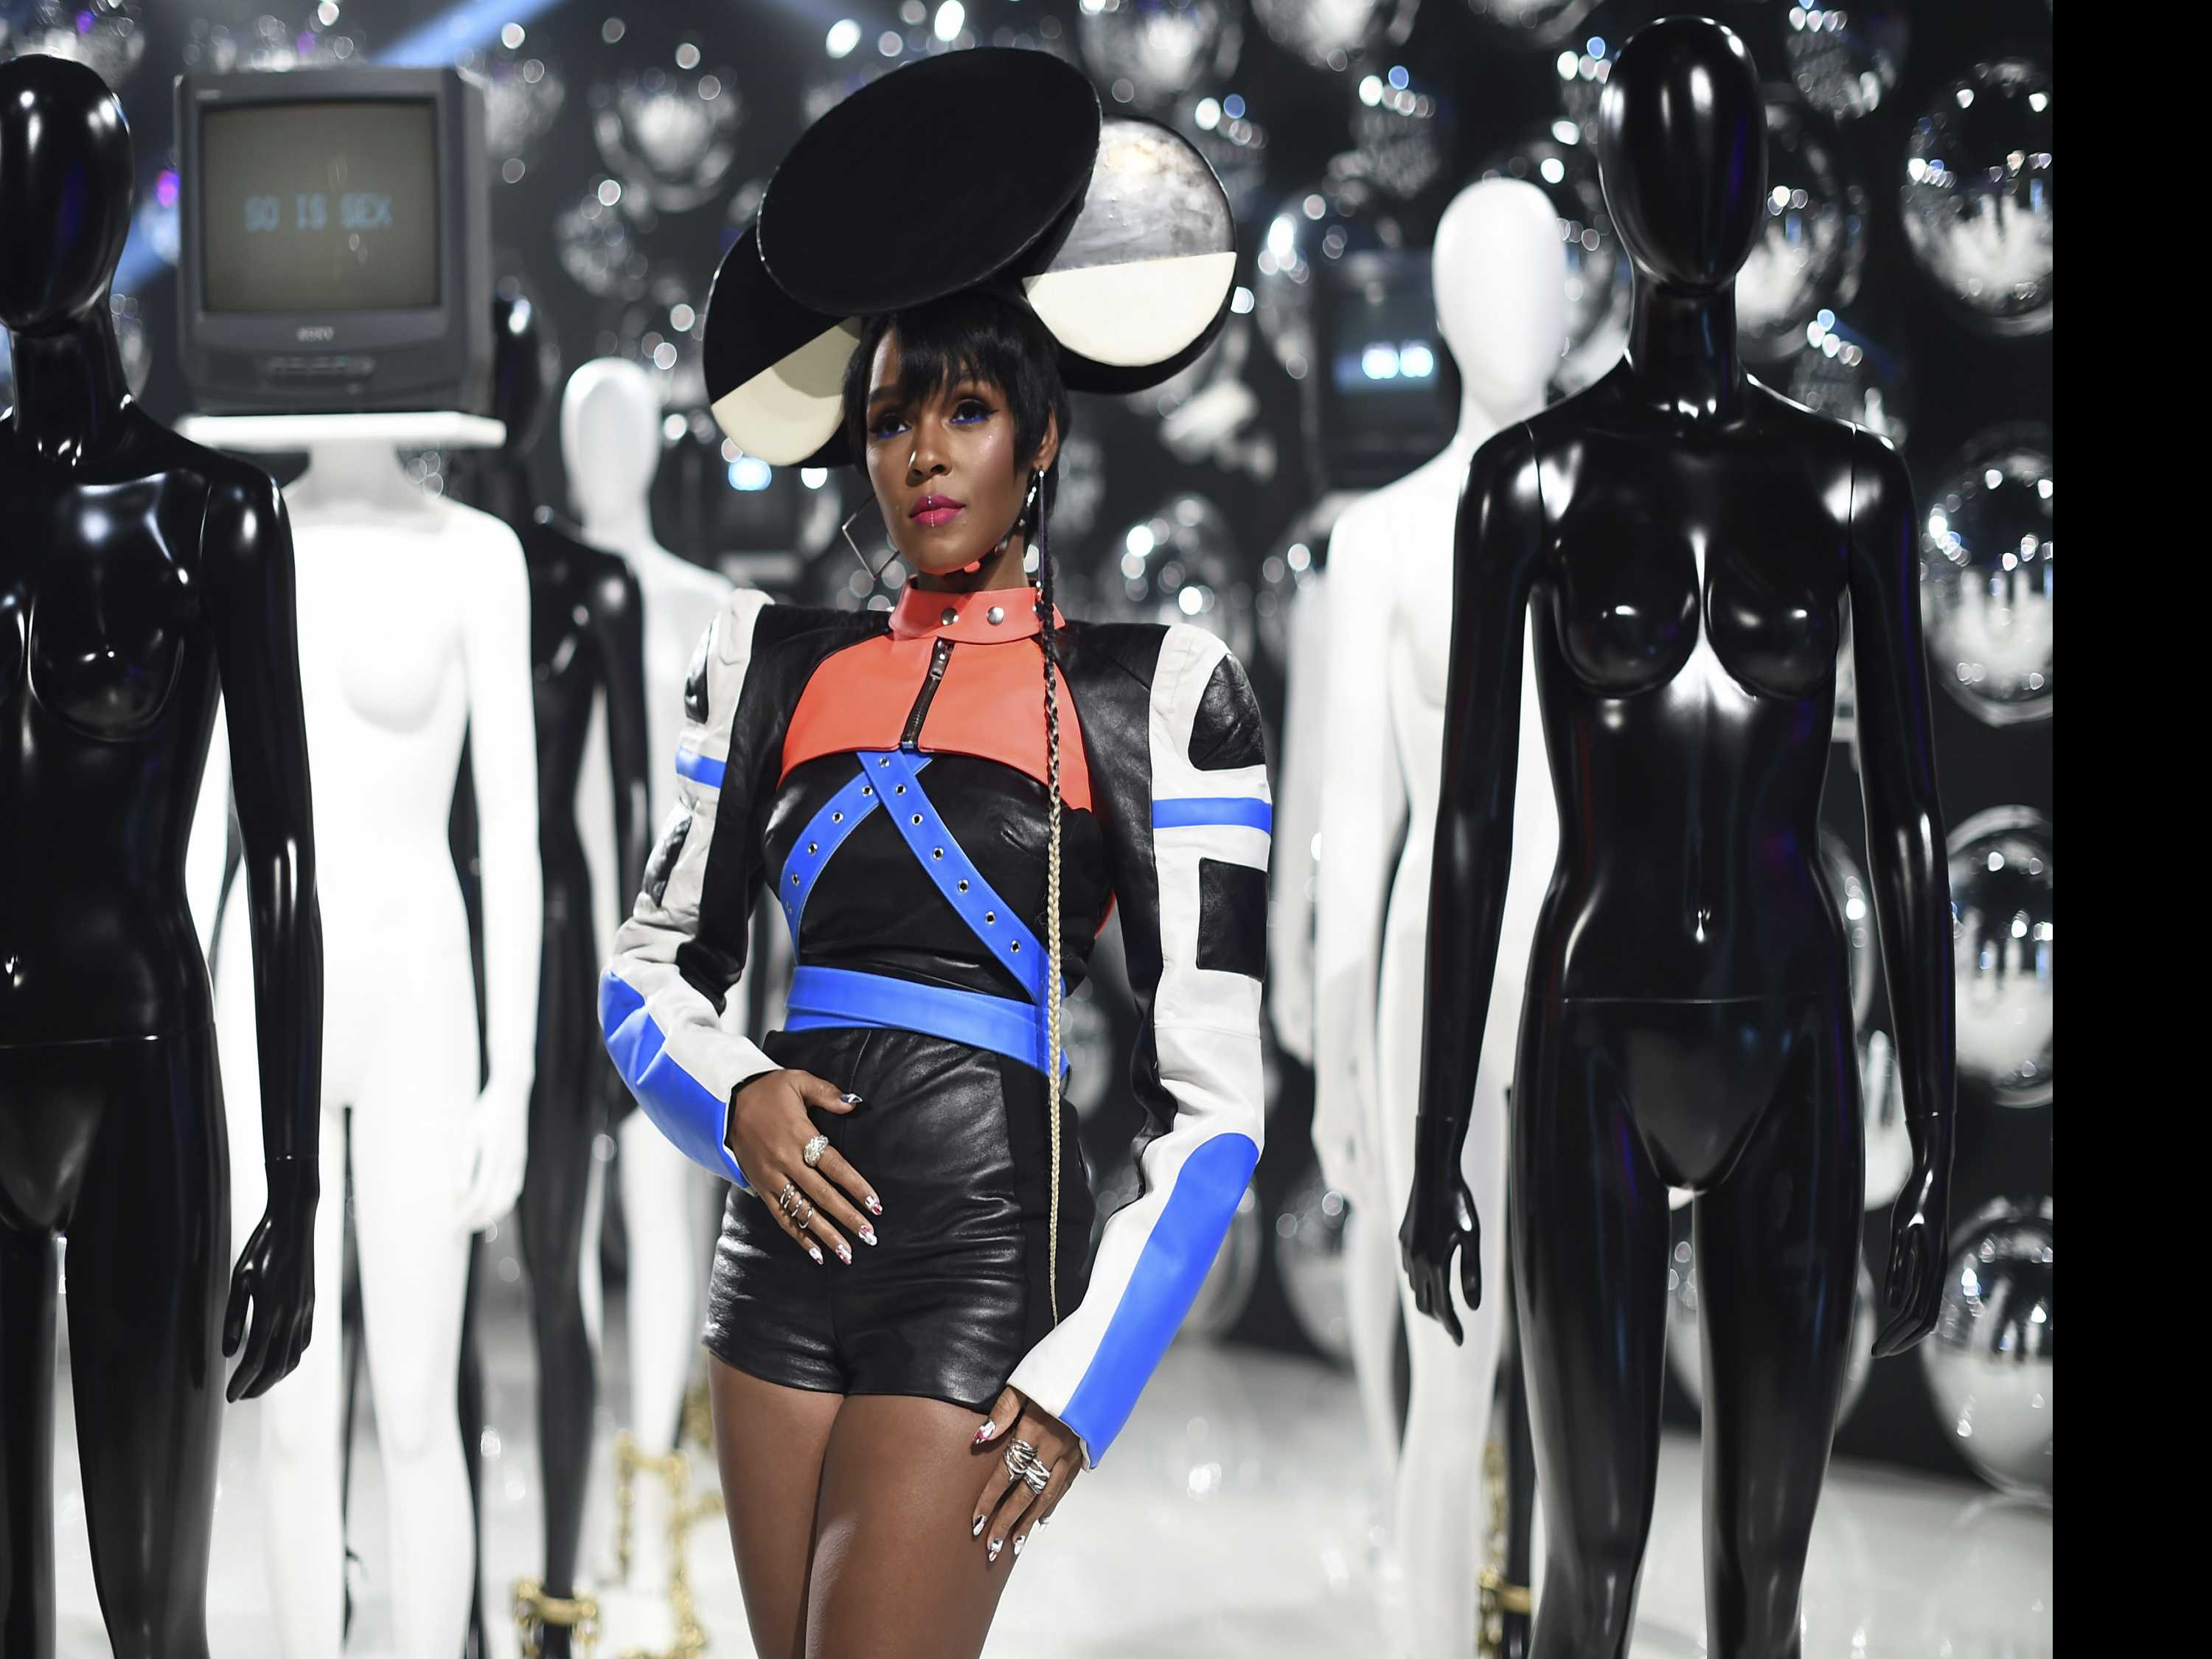 Janelle Monae Explores Surveillance in Her 1st Art Exhibit